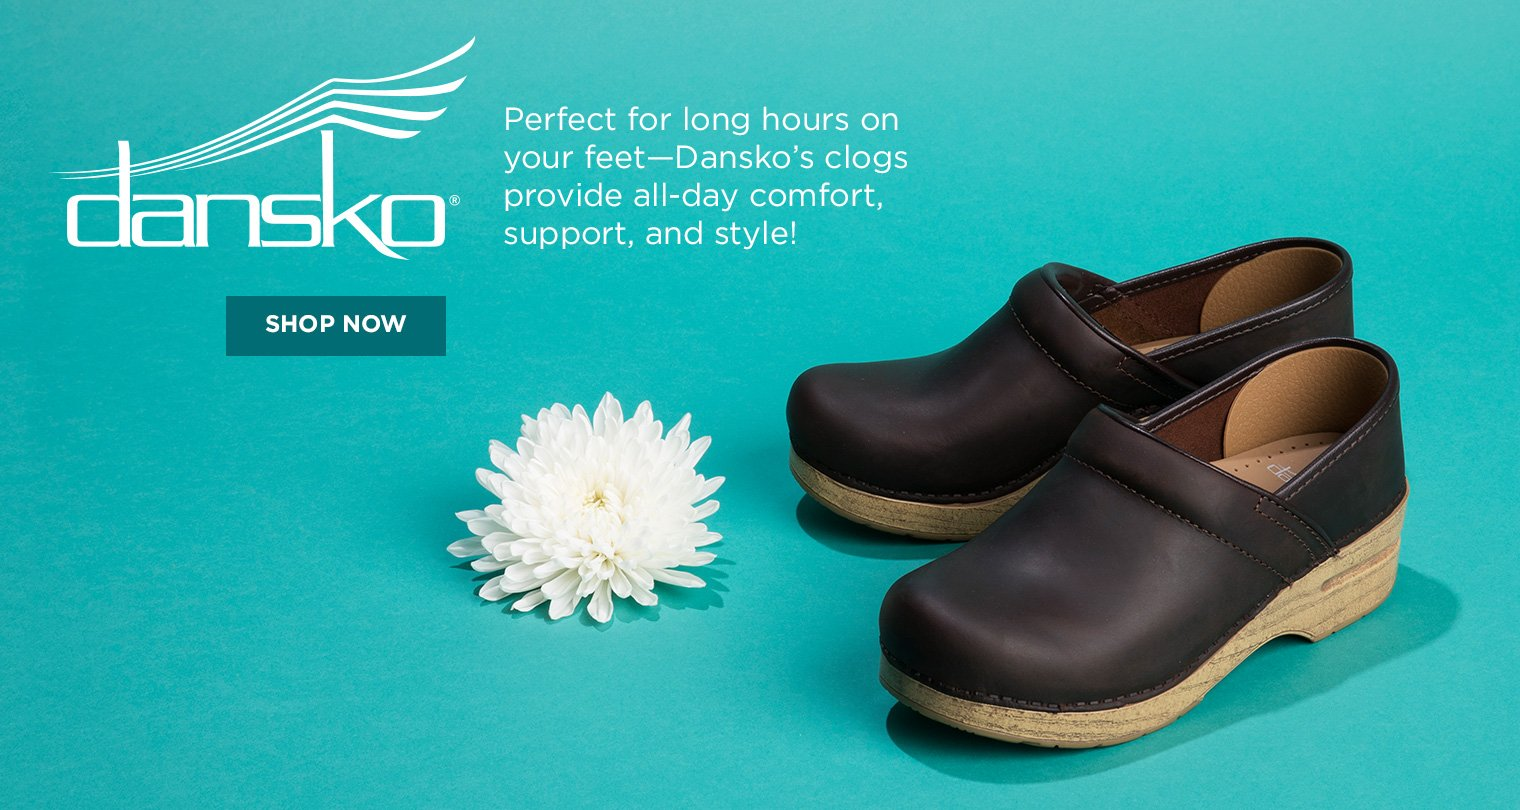 5686d3cfc18 Dansko. Perfect for long hours on your feet